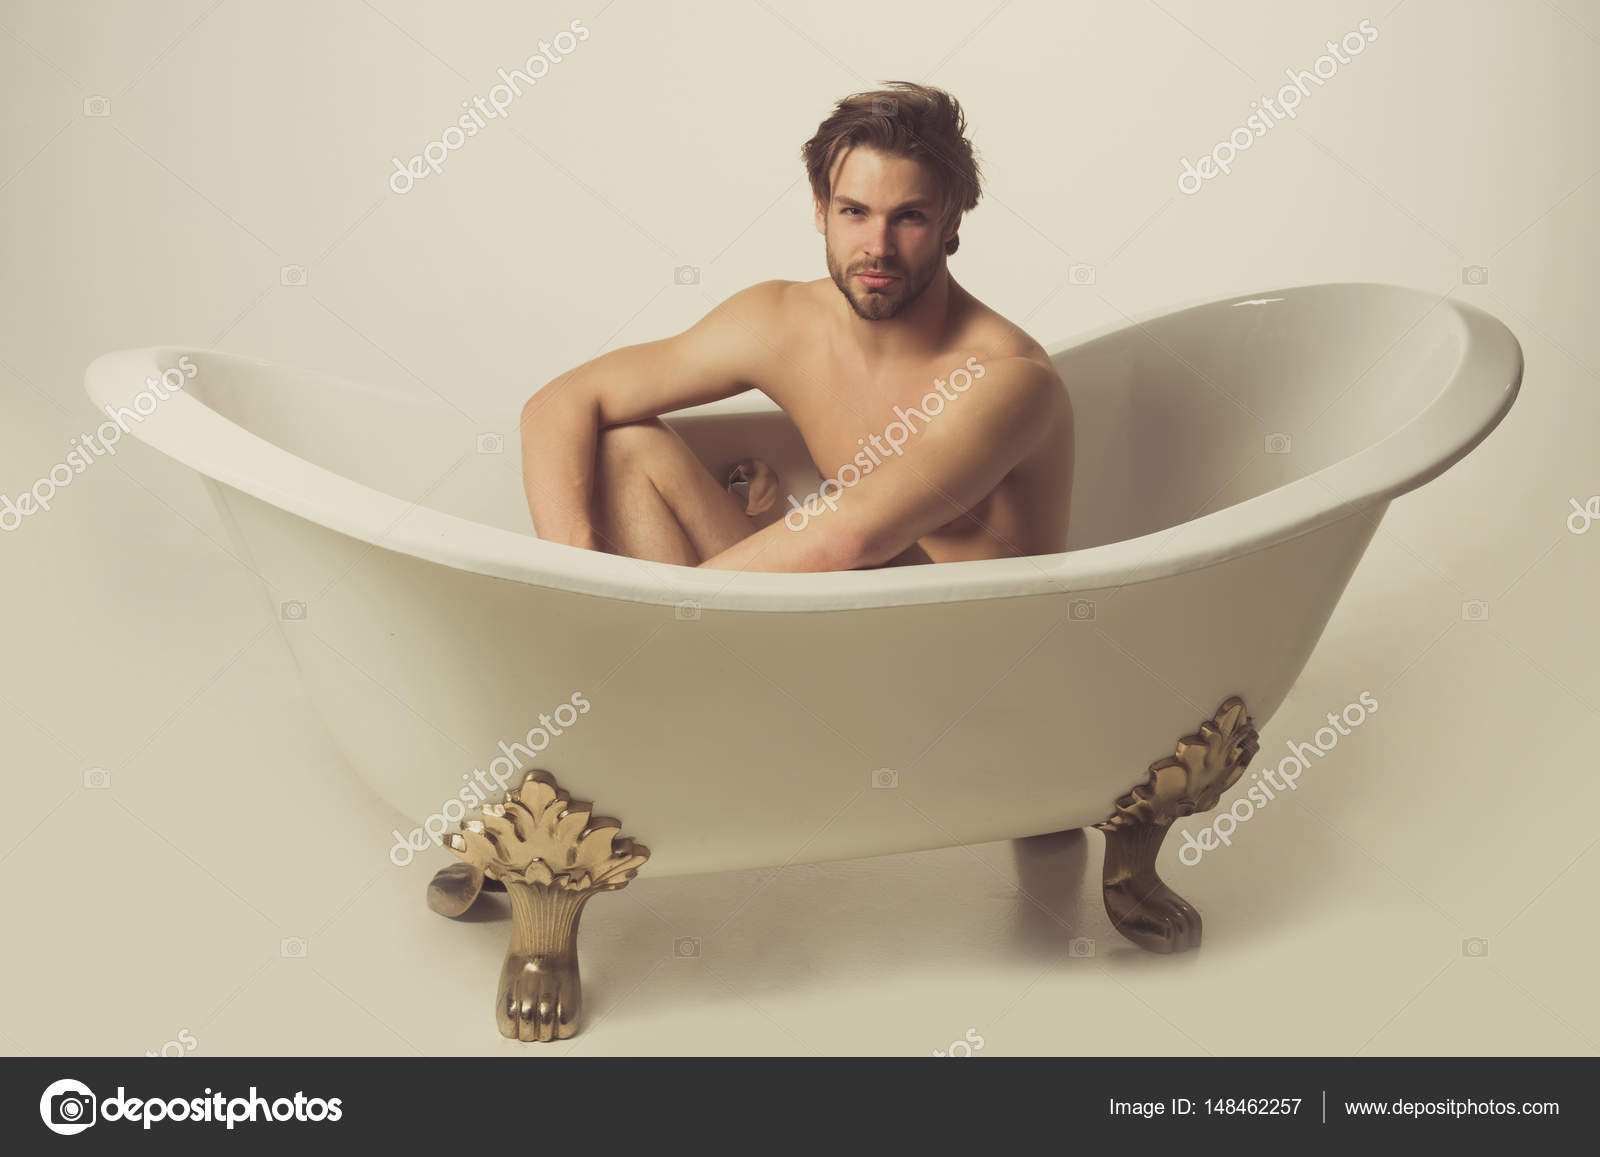 Join. naked guy in bathtub sexy consider, that